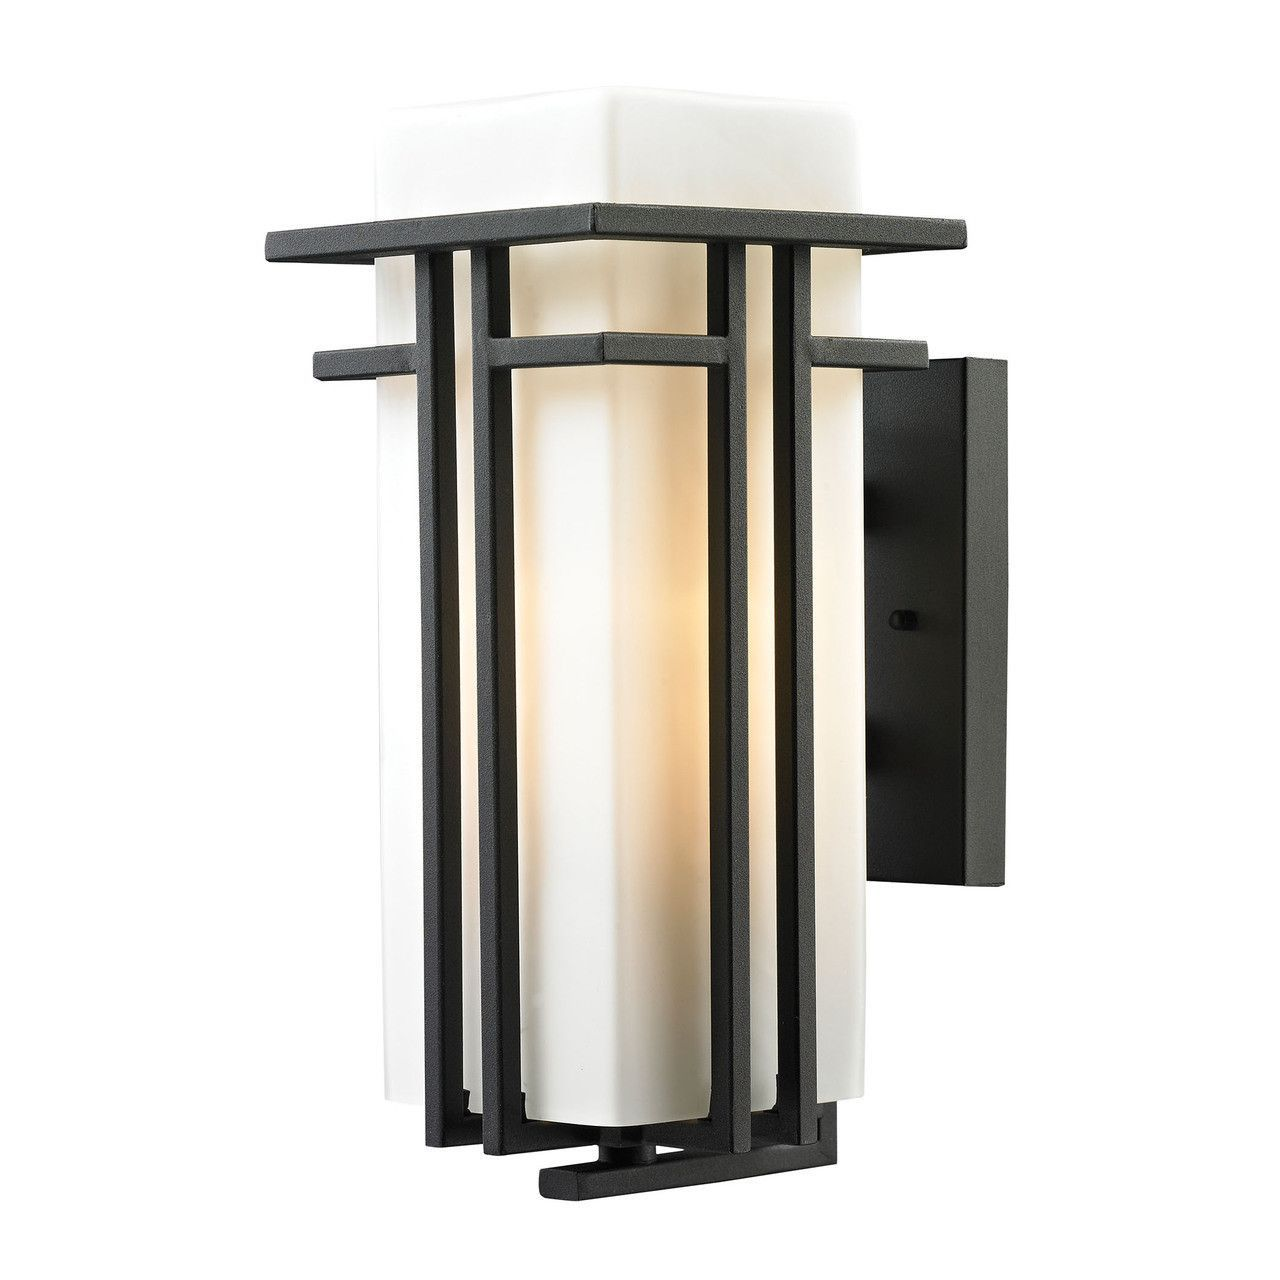 Croftwell Light Outdoor Sconce In Textured Matte Black